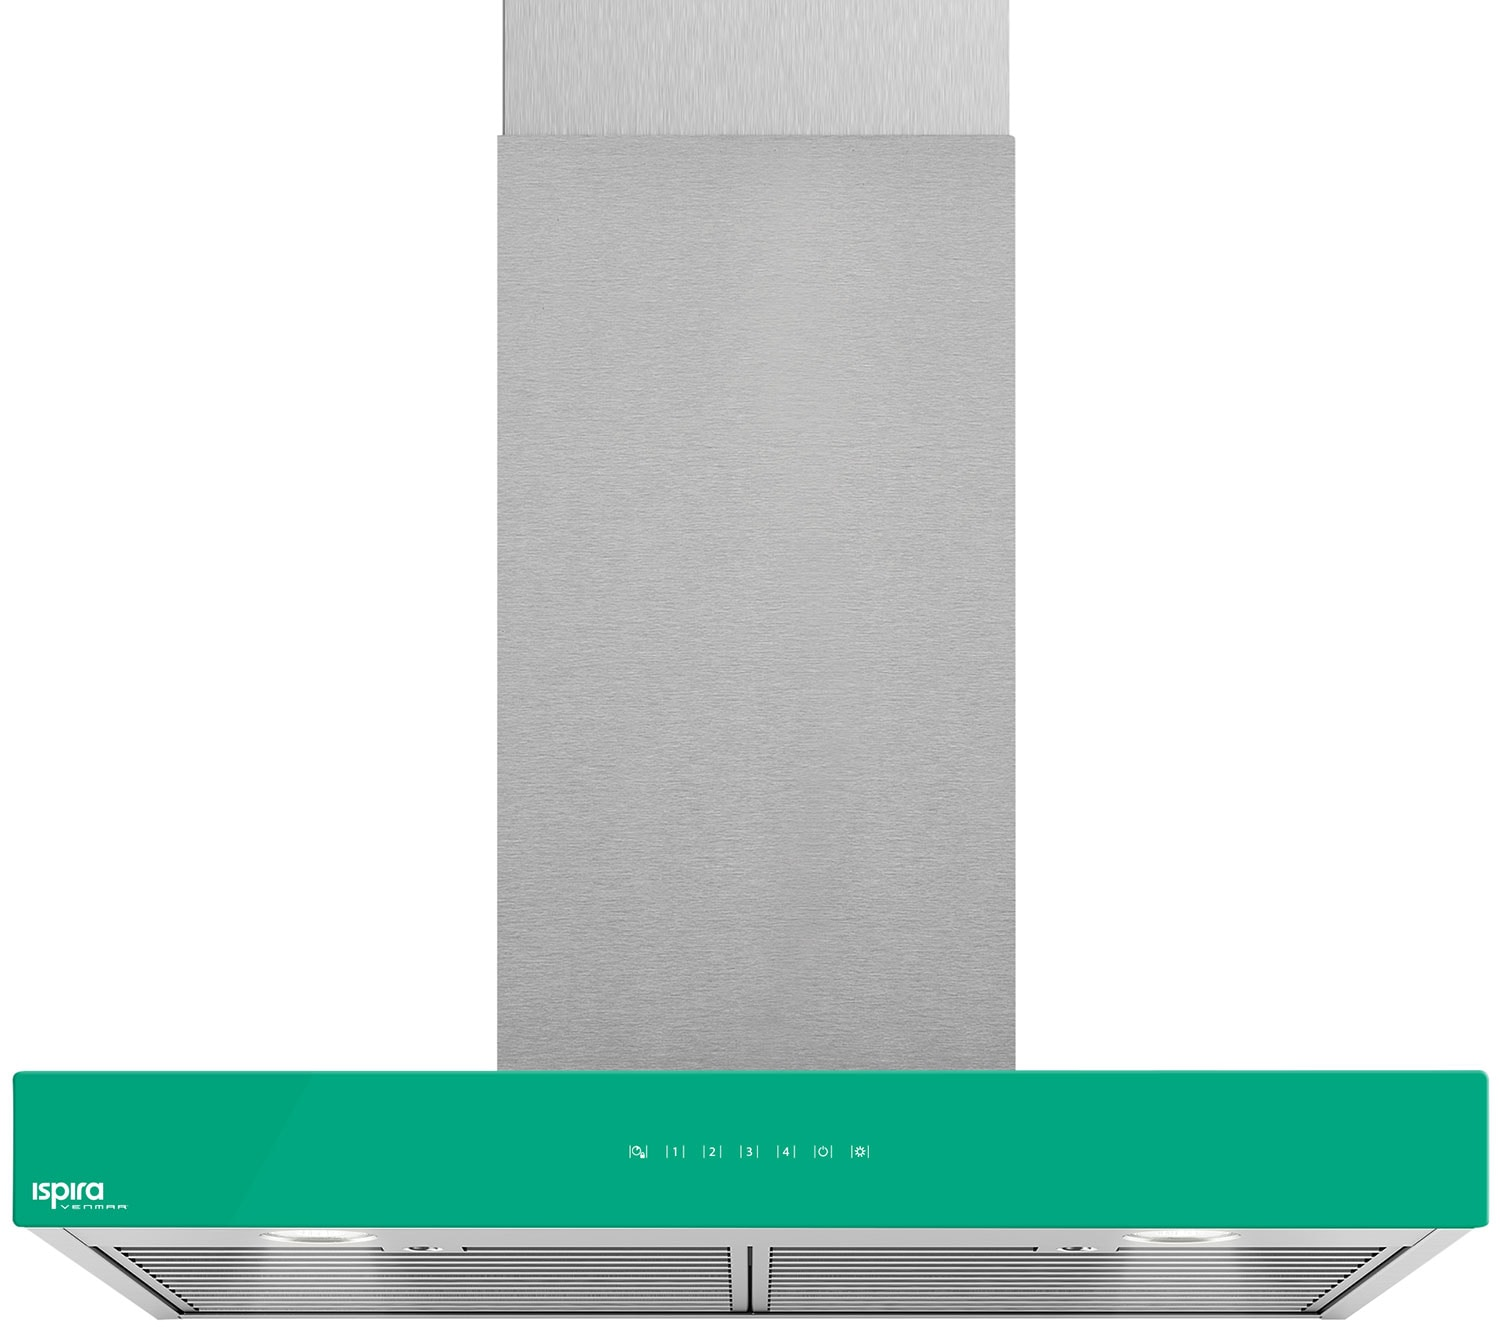 "Venmar Ispira 30"" Chimney Range Hood – Emerald Green"